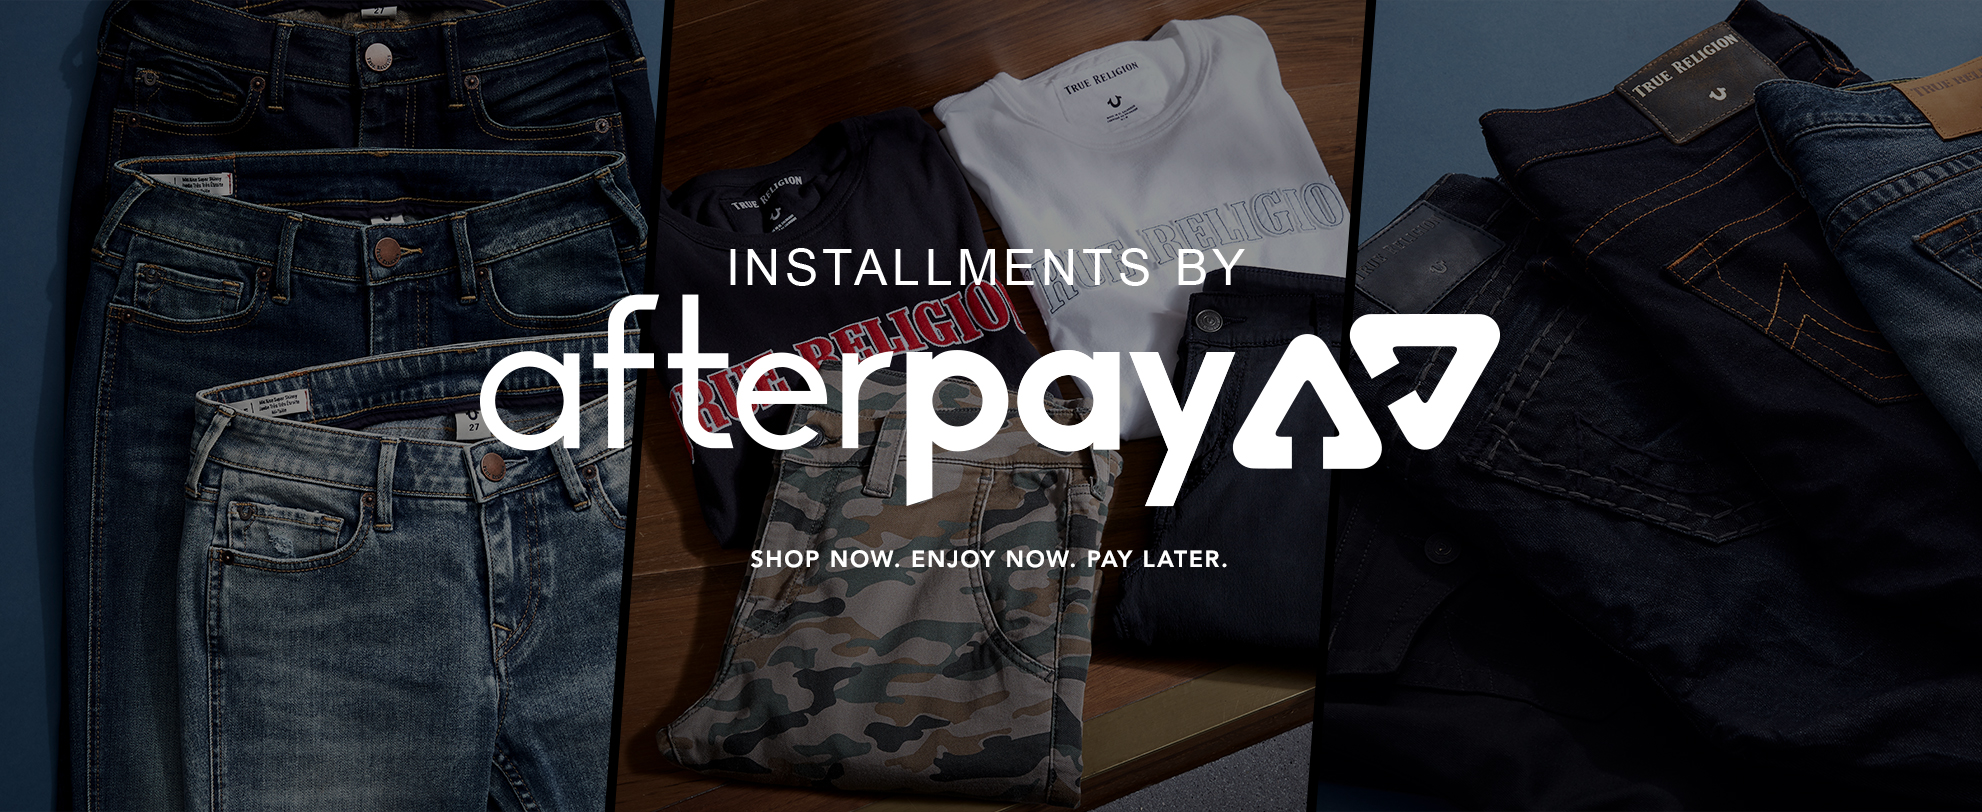 What is Afterpay